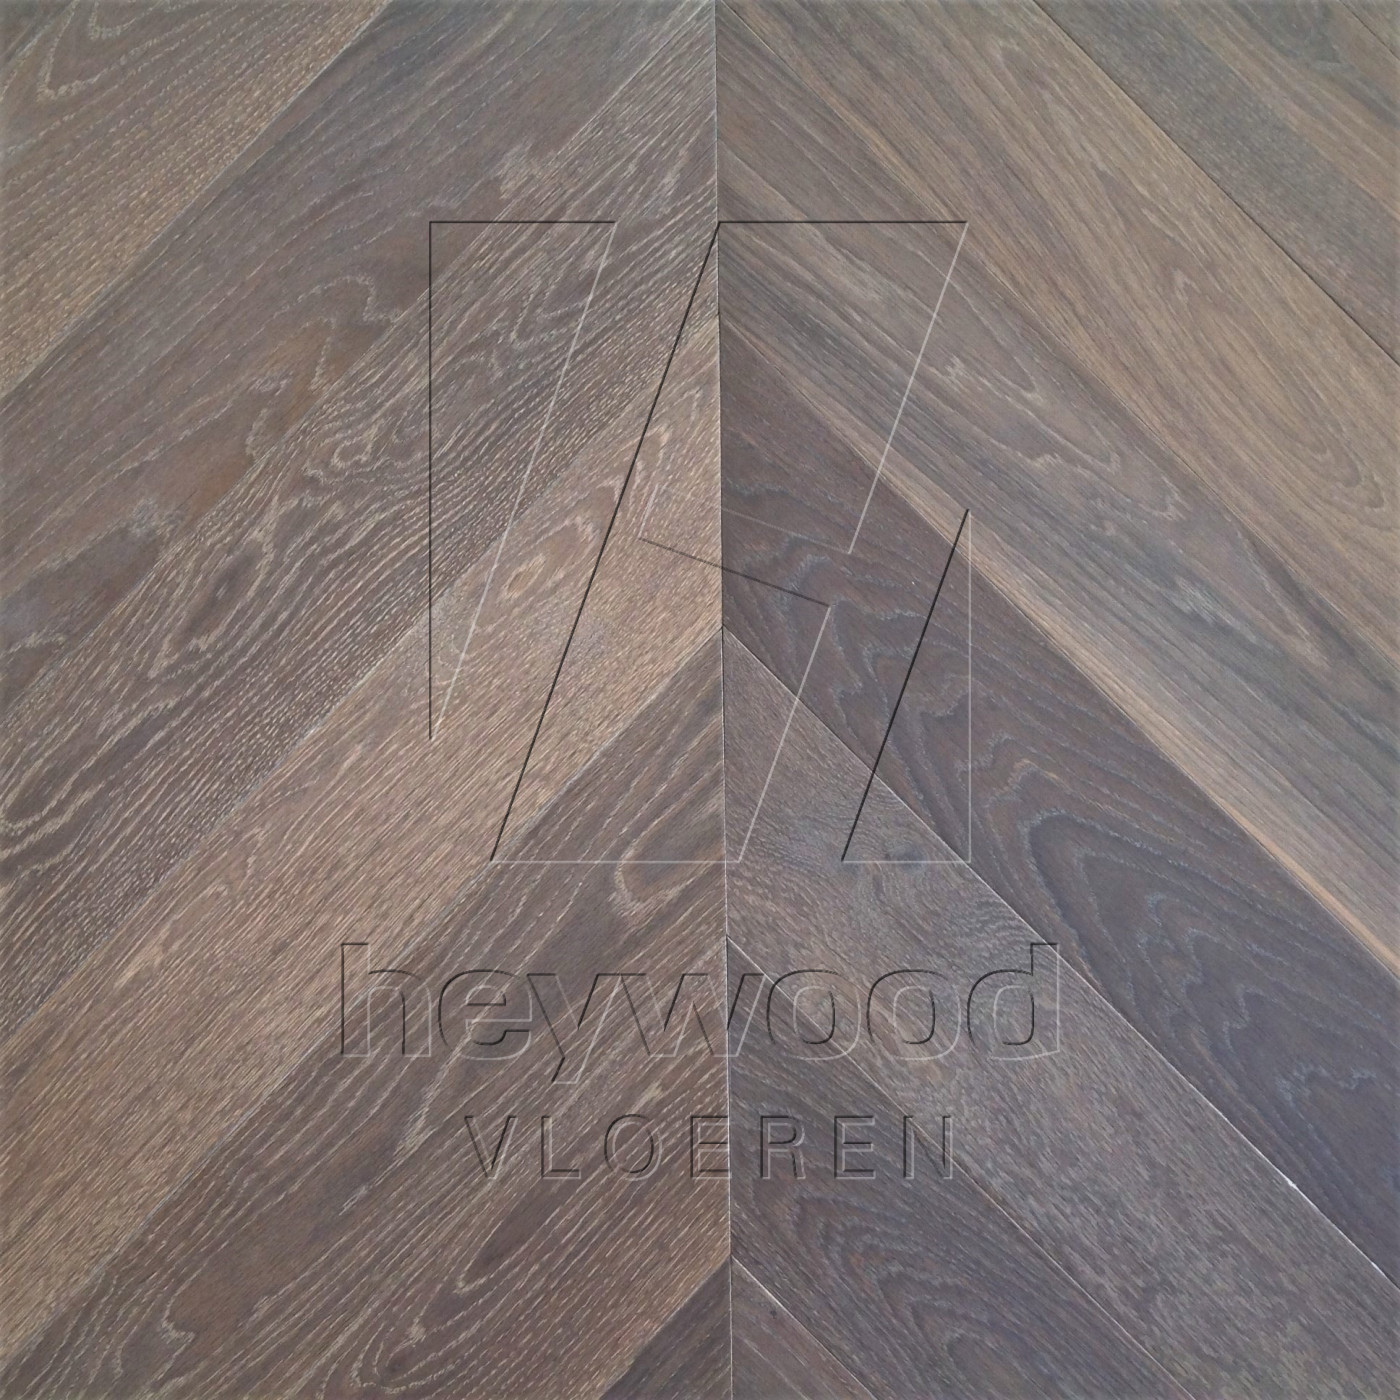 Chevron Berkeley in Chevron of Pattern & Panel Floors